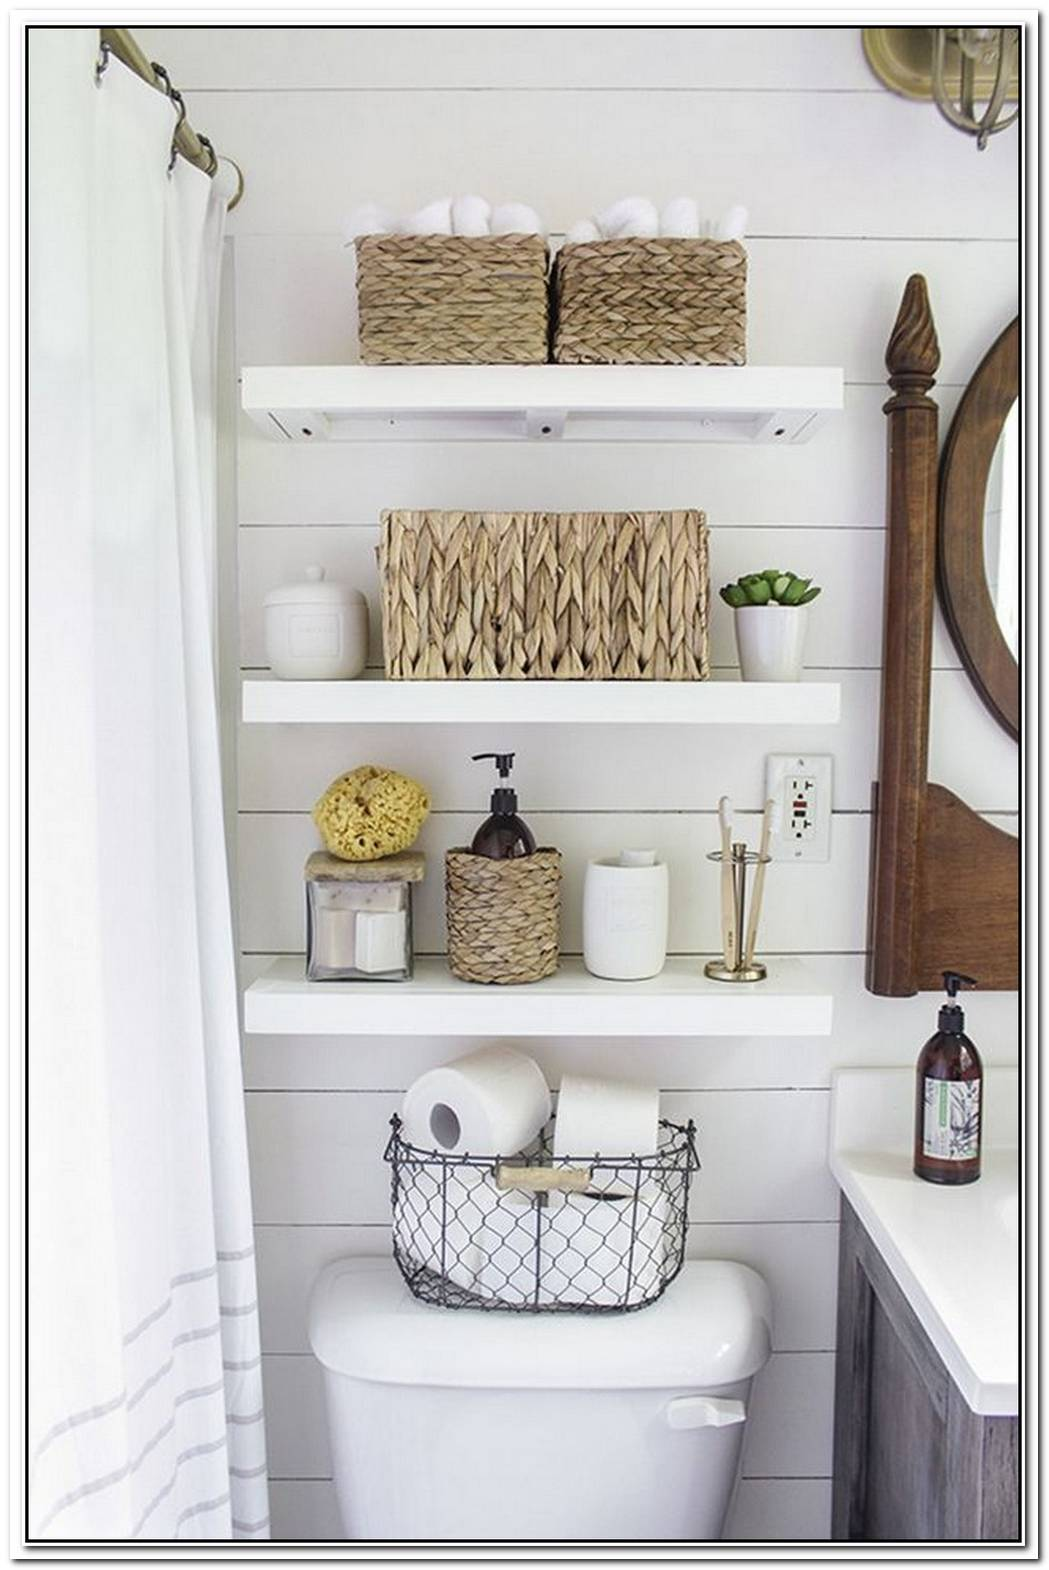 Interior Bathroom Small Space Organization